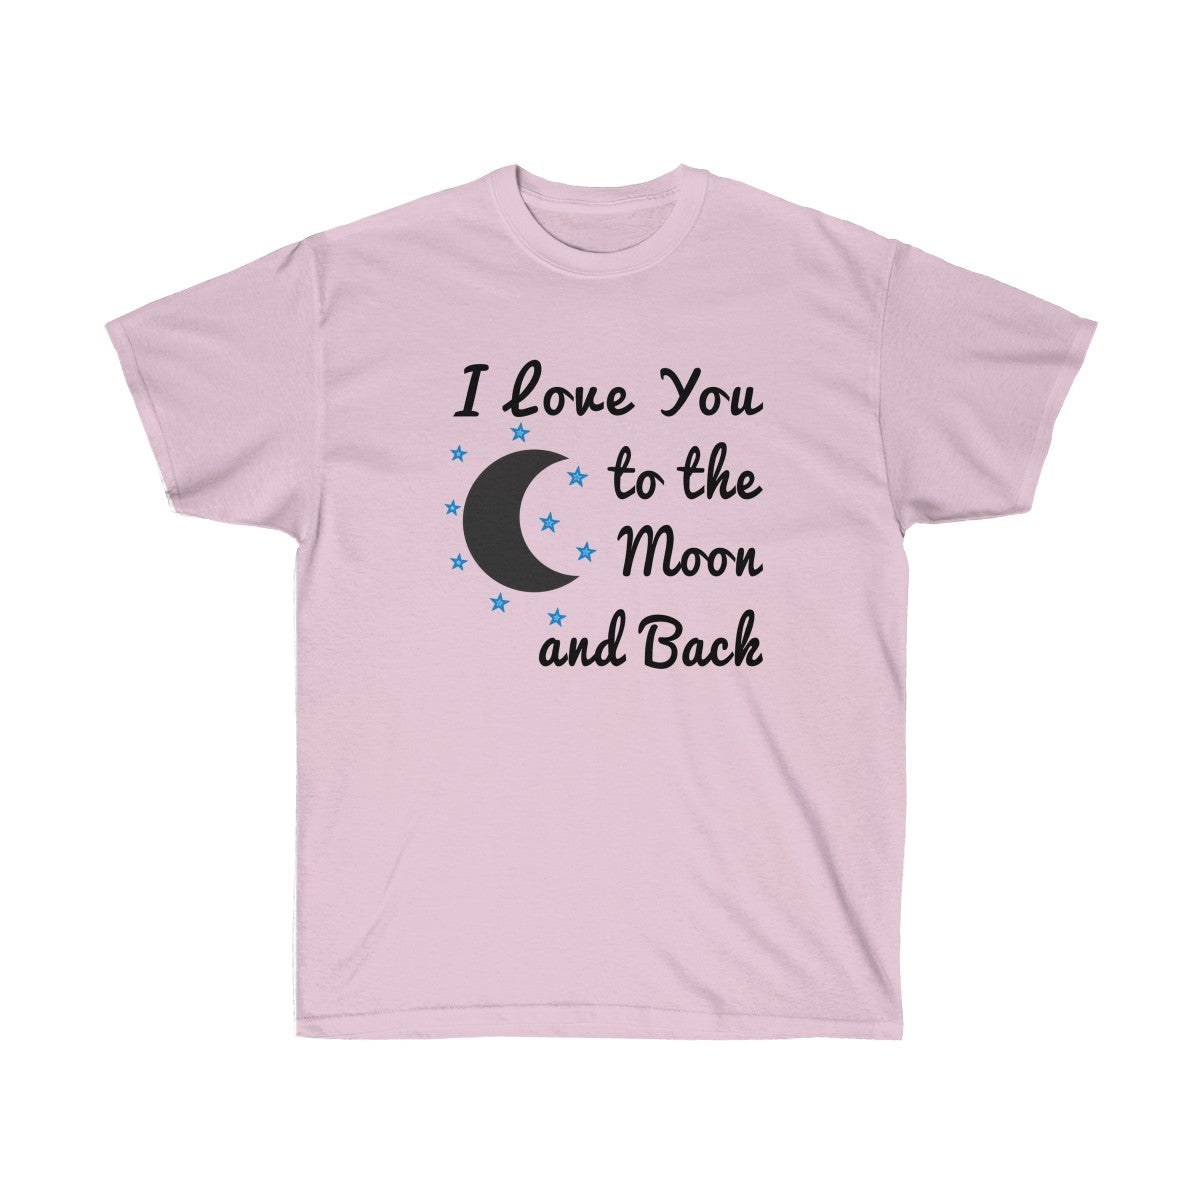 bcf1e927d I Love You to the Moon and Back T-shirt - Love t shirts for Couples ...